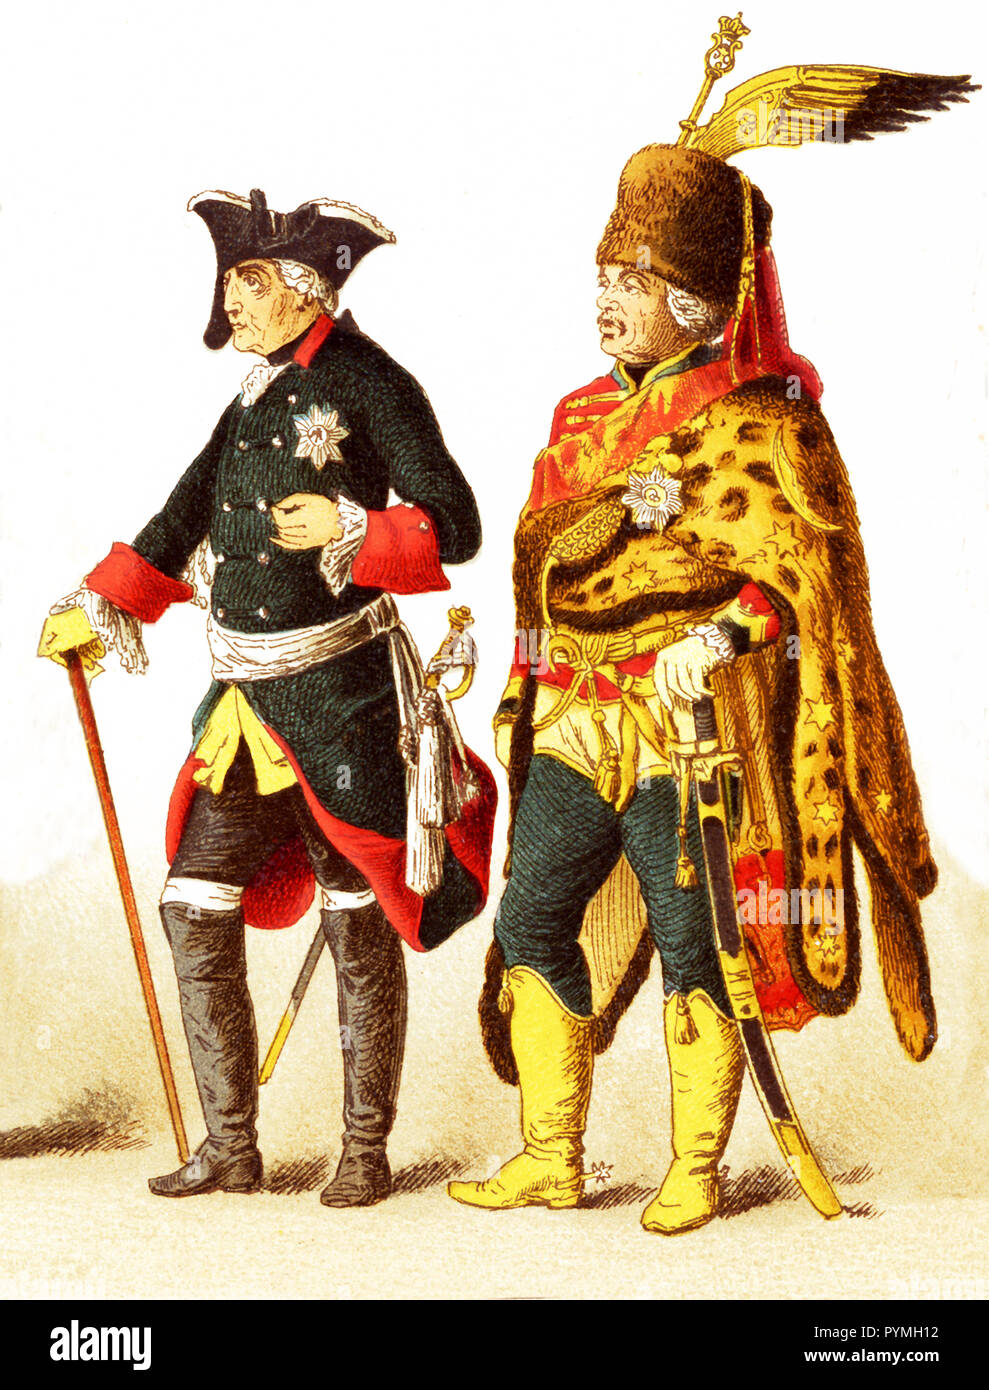 The Figures represented here are all Germans in 1700s and are, from left to right: an officer of dragoons, general of cuirrasiers, Frederick II, General Ziethen, officer of infantry of the guard. The illustration dates to 1882. - Stock Image